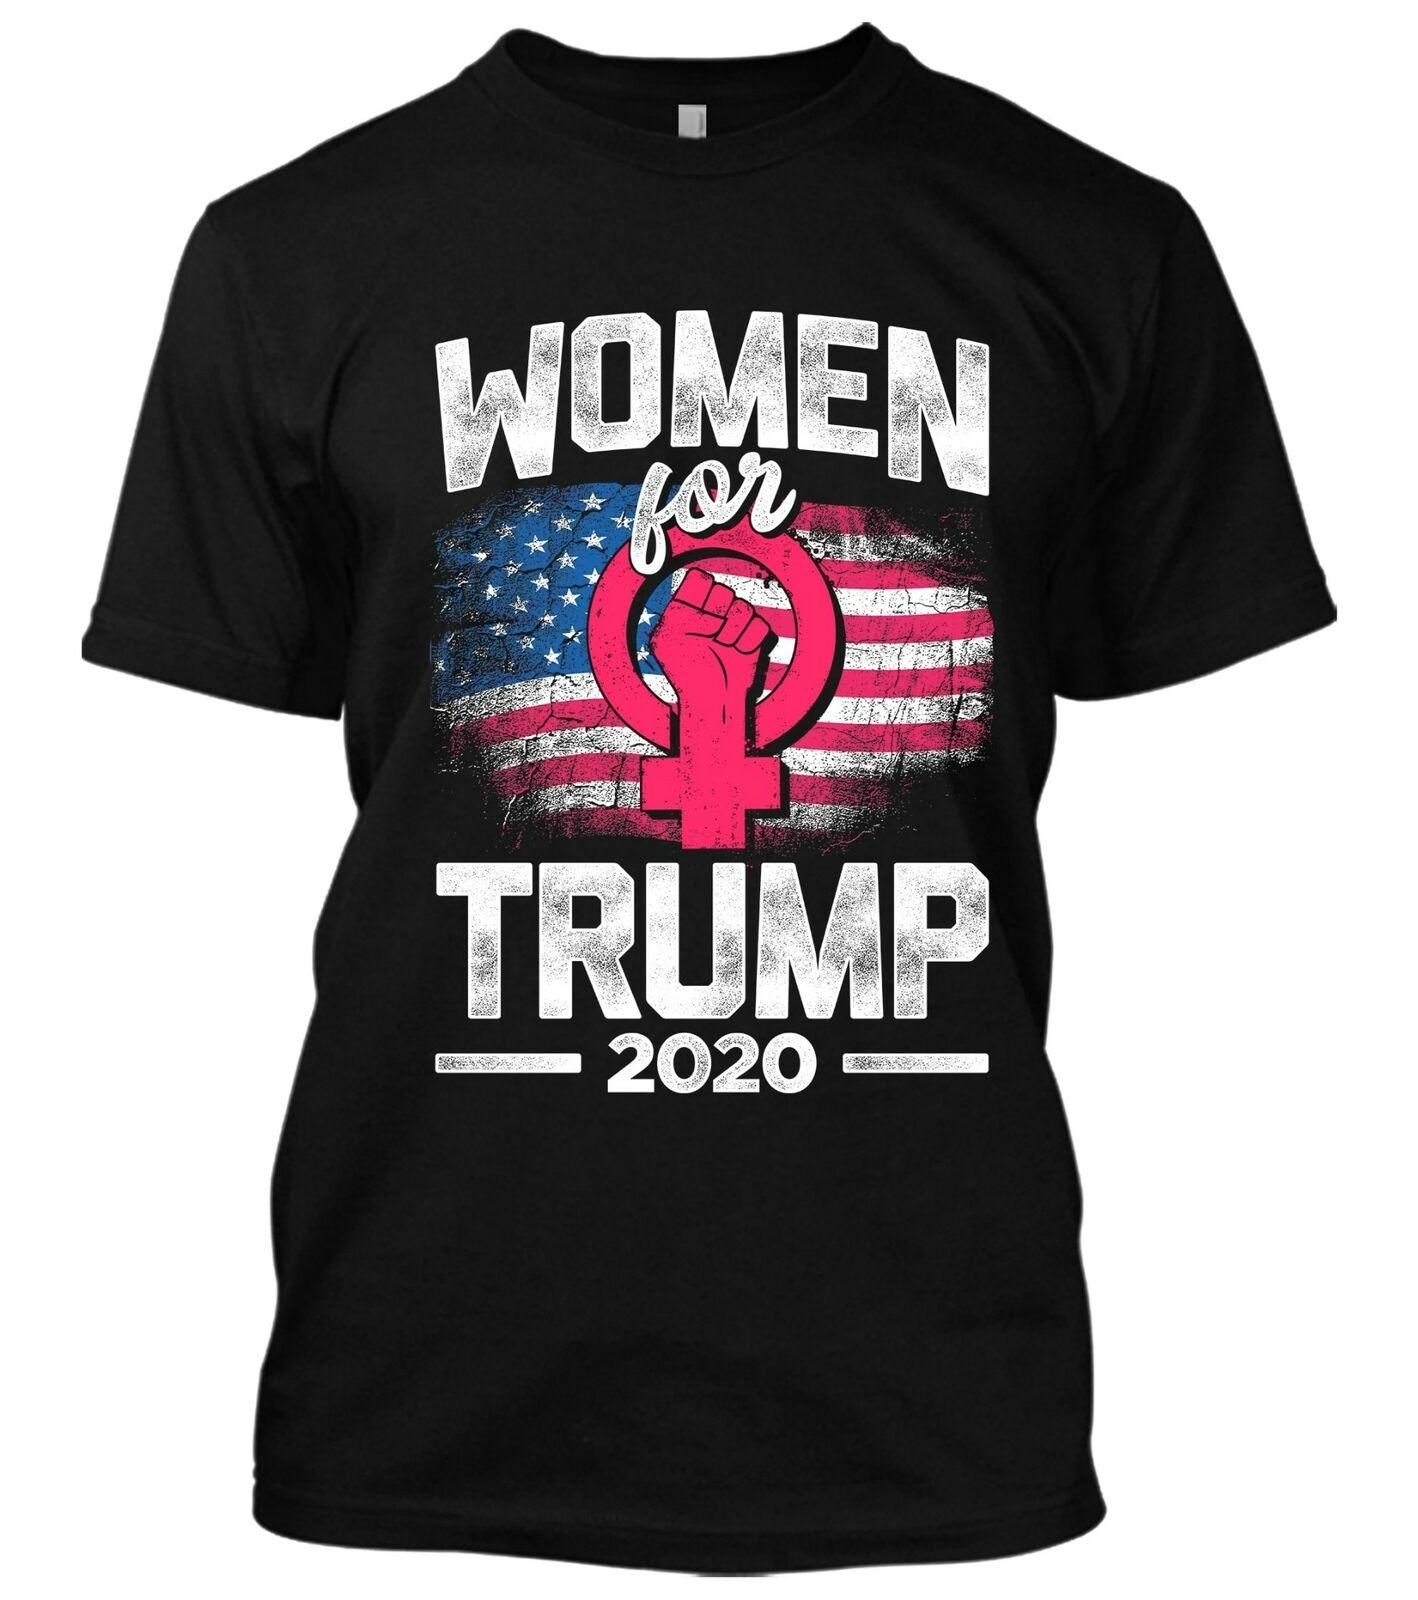 Women For Donald Trump 2020 American Flag Pink Women Vote Usa Elections T-Shirt 2019 Design Men Summer Cool Funny Funny Fitness Shirt